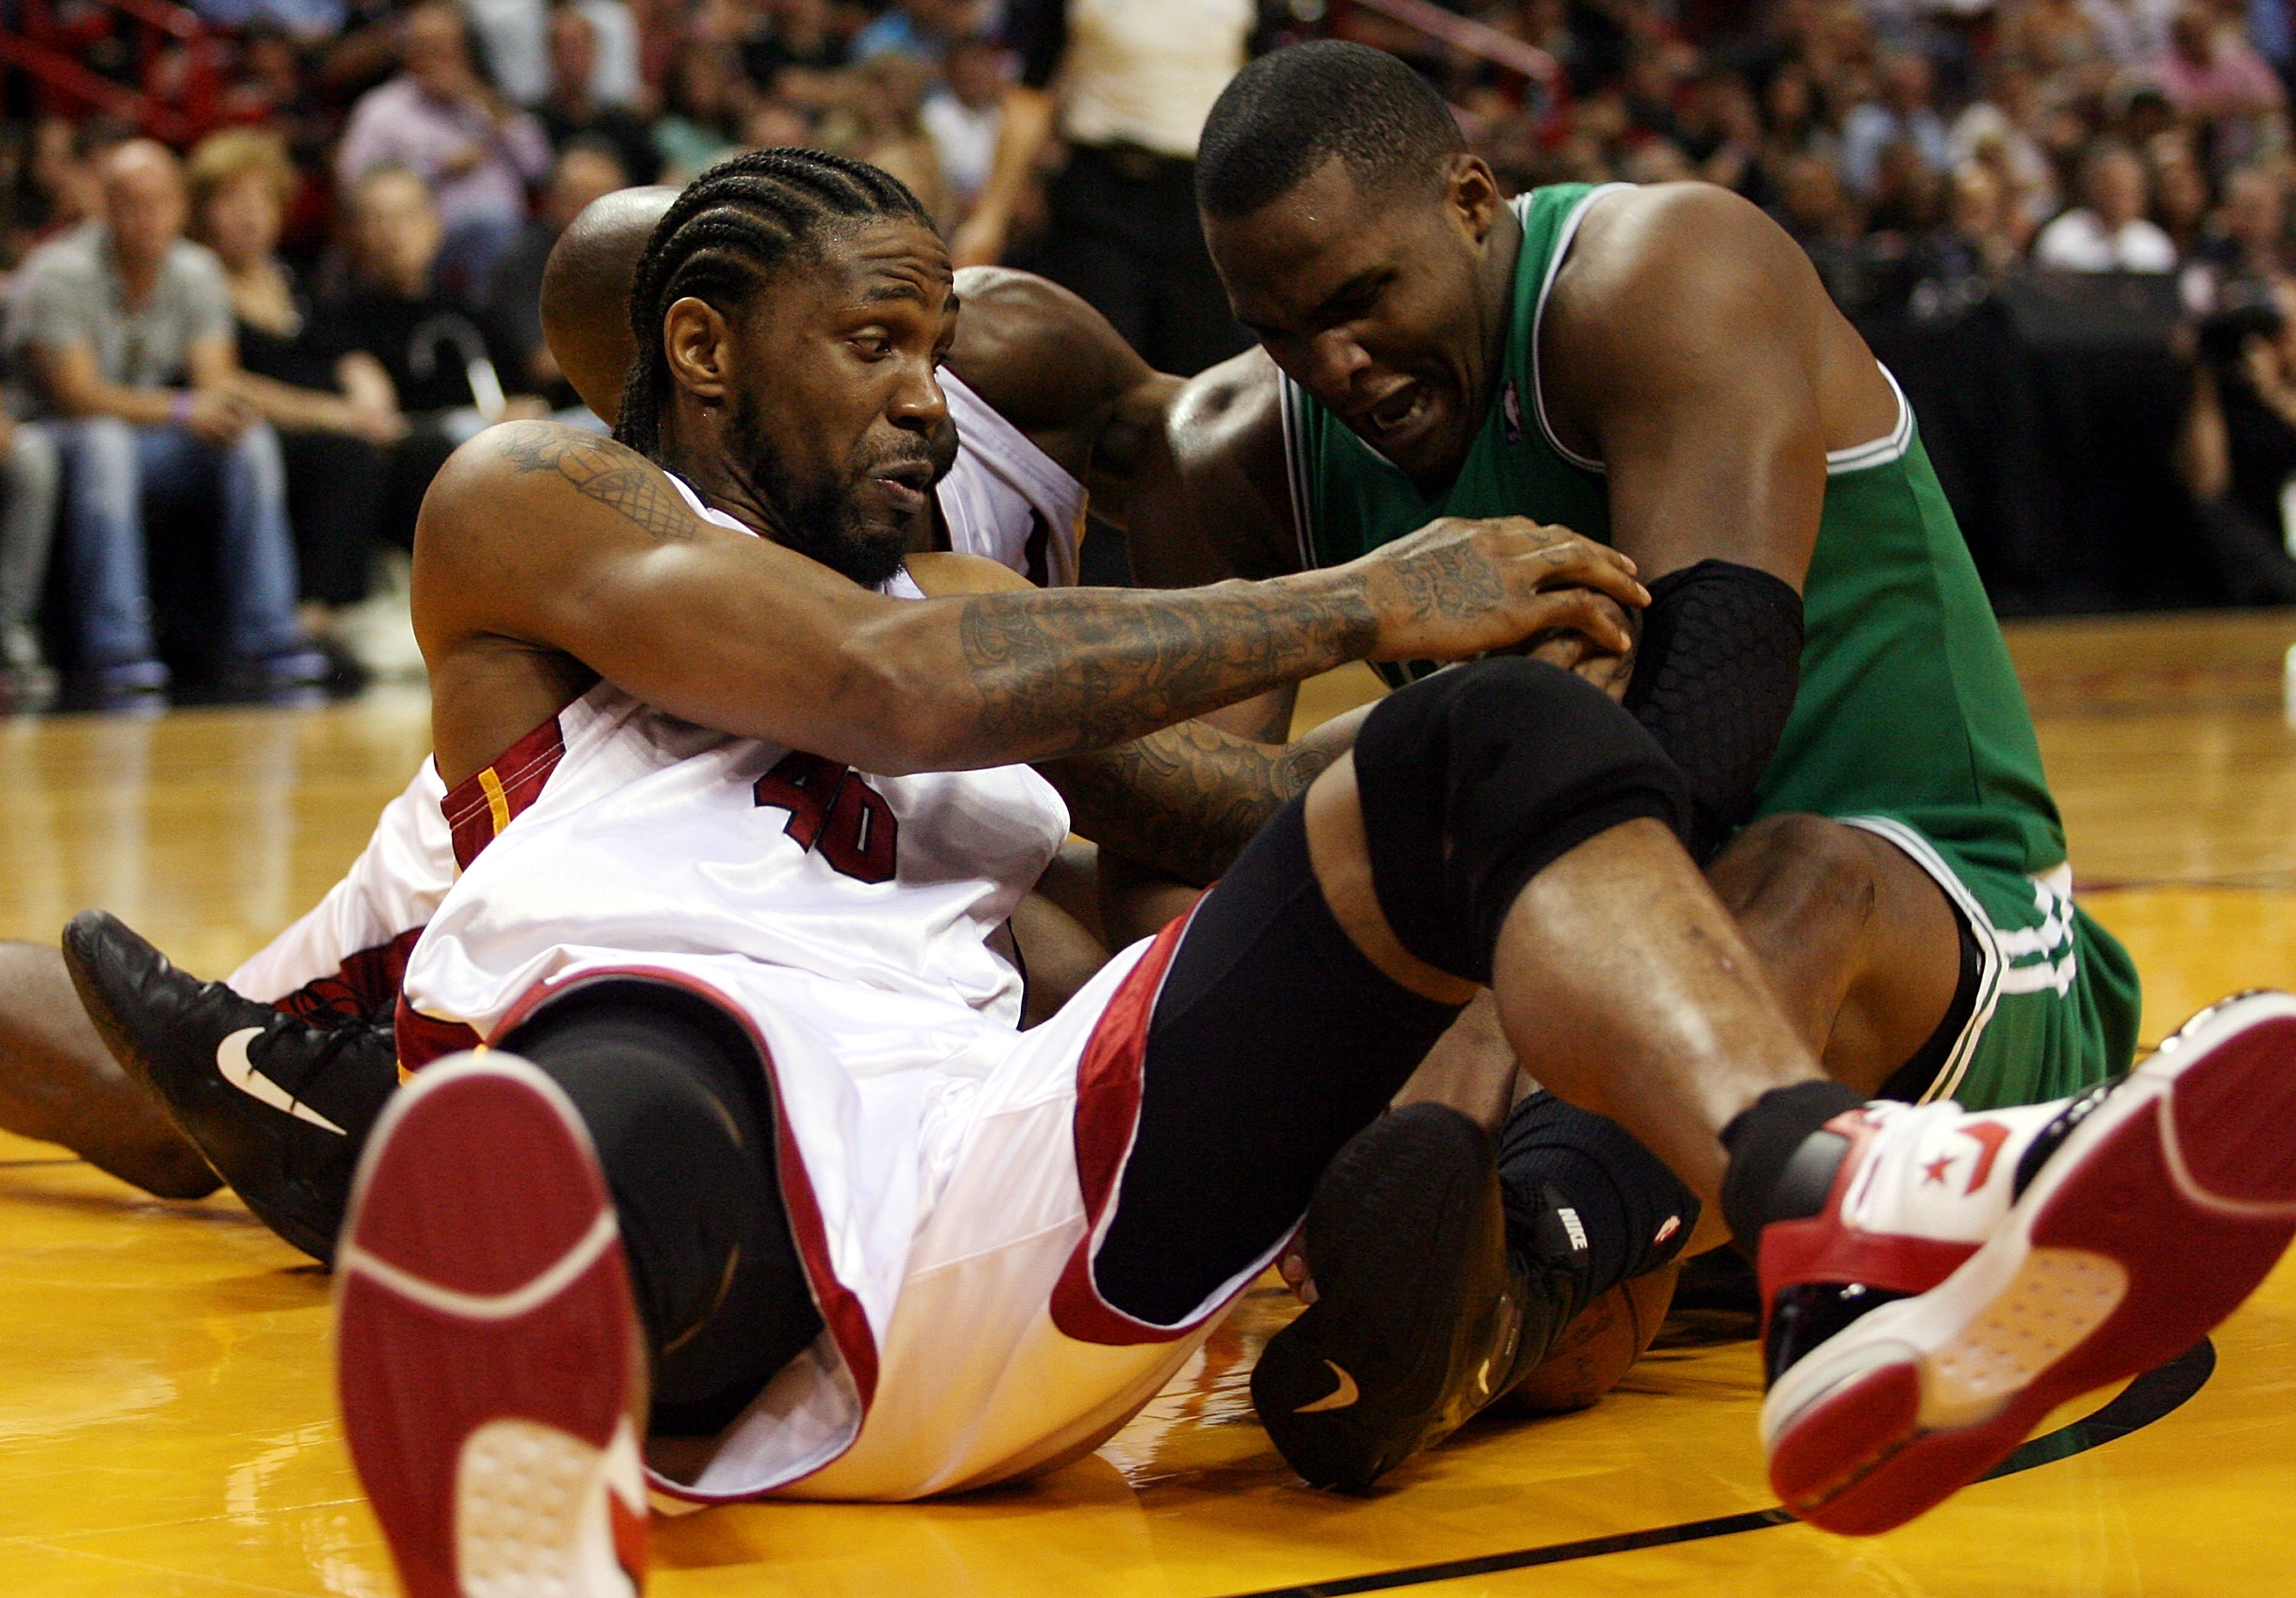 MIAMI - APRIL 25:  Center Glen Davis #11 of the Boston Celtics battles forward Udonis Haslem #40 of  the Miami Heat in Game Four of the Eastern Conference Quarterfinals during the 2010 NBA Playoffs at American Airlines Arena on April 25, 2010 in Miami, Fl